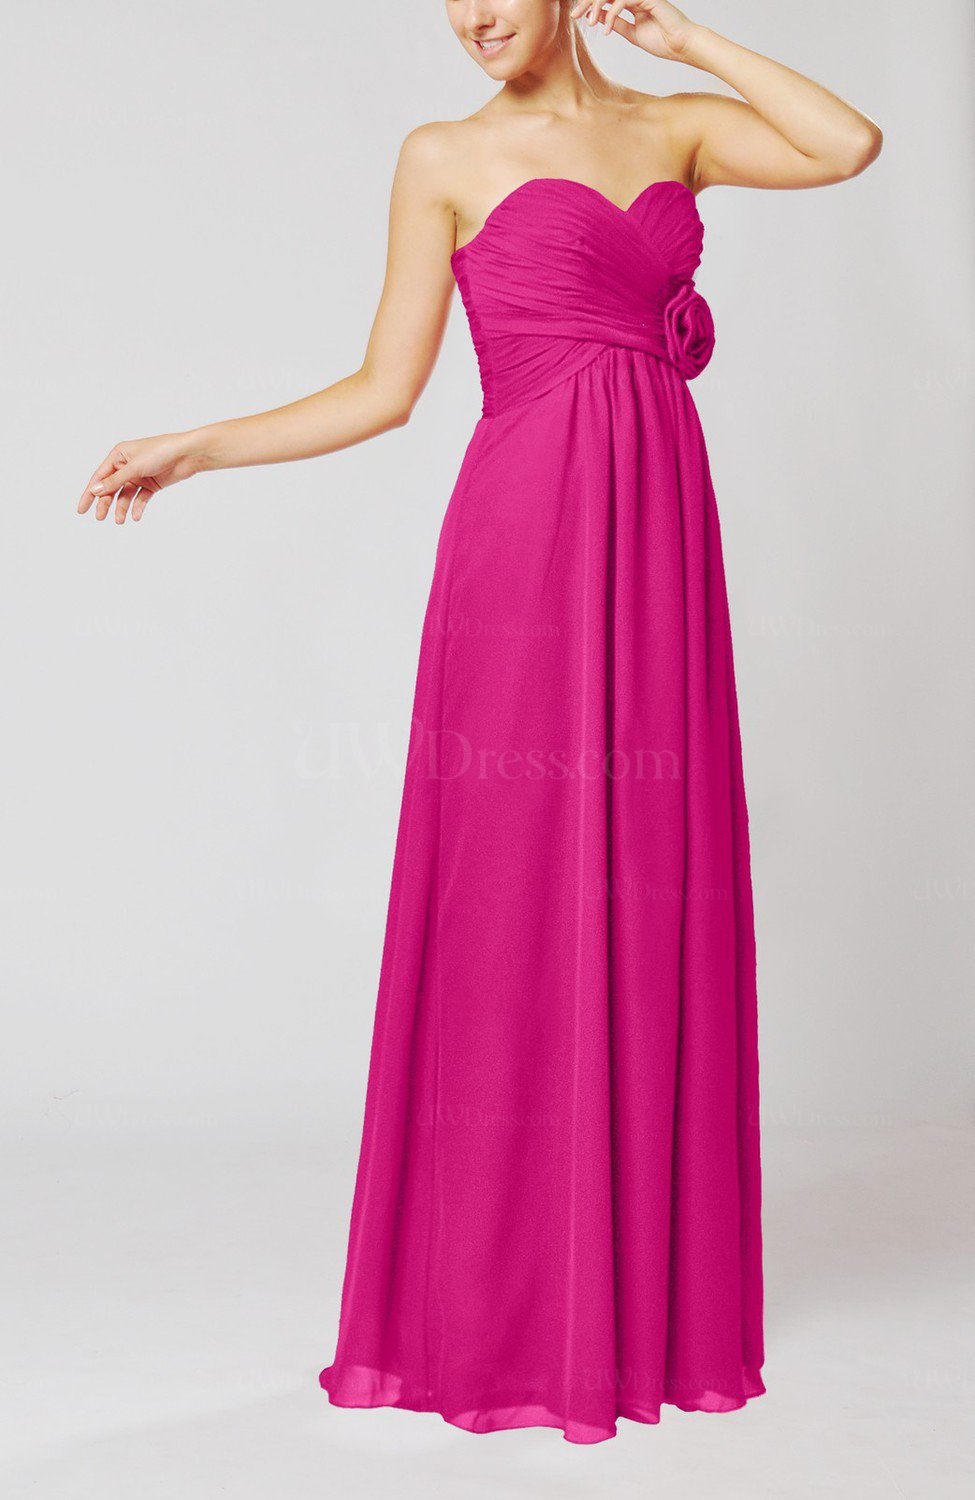 a6ee772848 Hot Pink Simple Sheath Sweetheart Sleeveless Chiffon Floor Length Bridesmaid  Dresses (Style D36653)